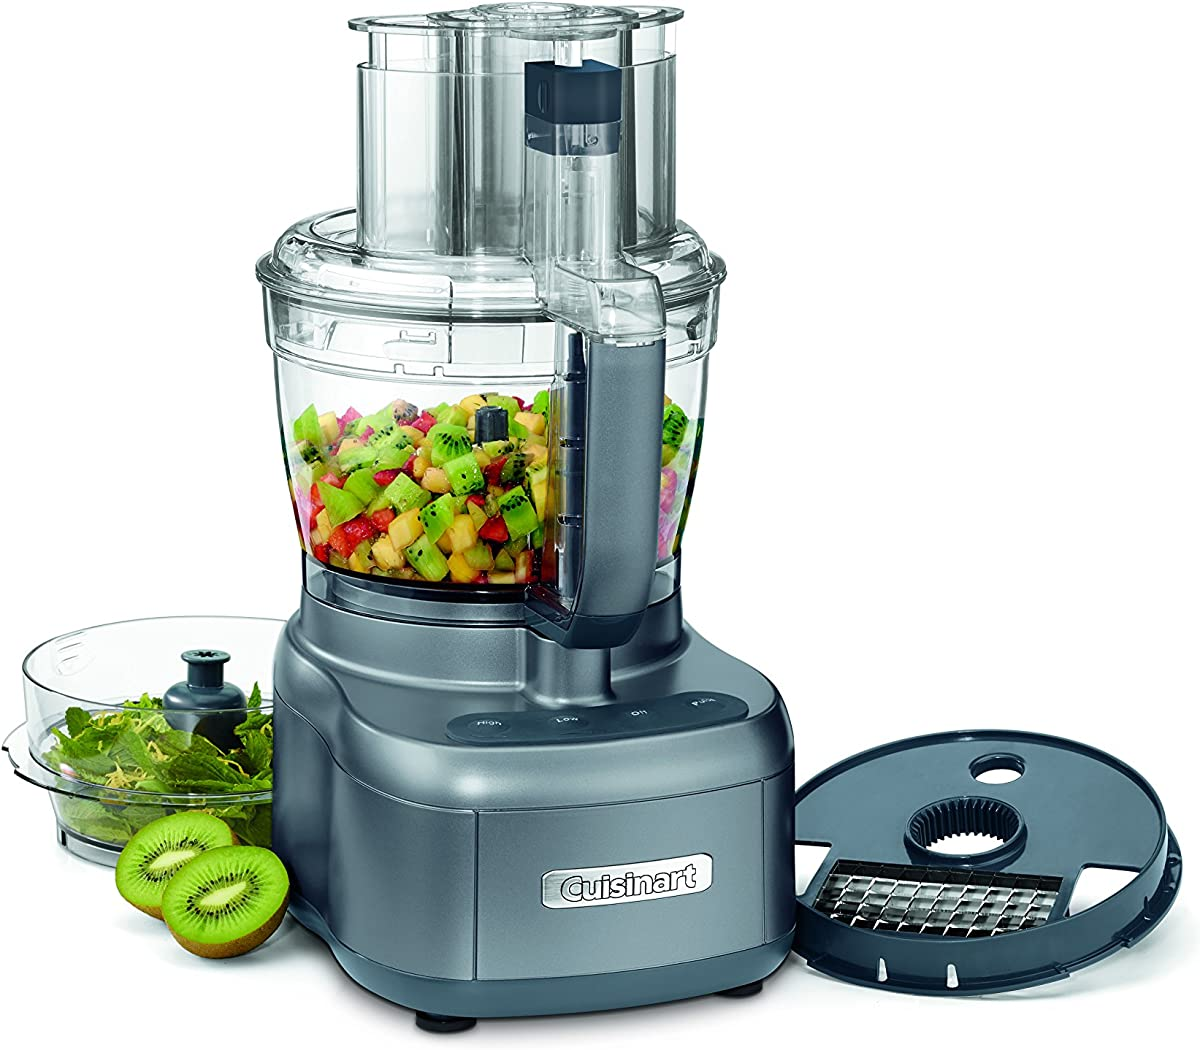 Best Home Food Processor: Top Models to Use at Home